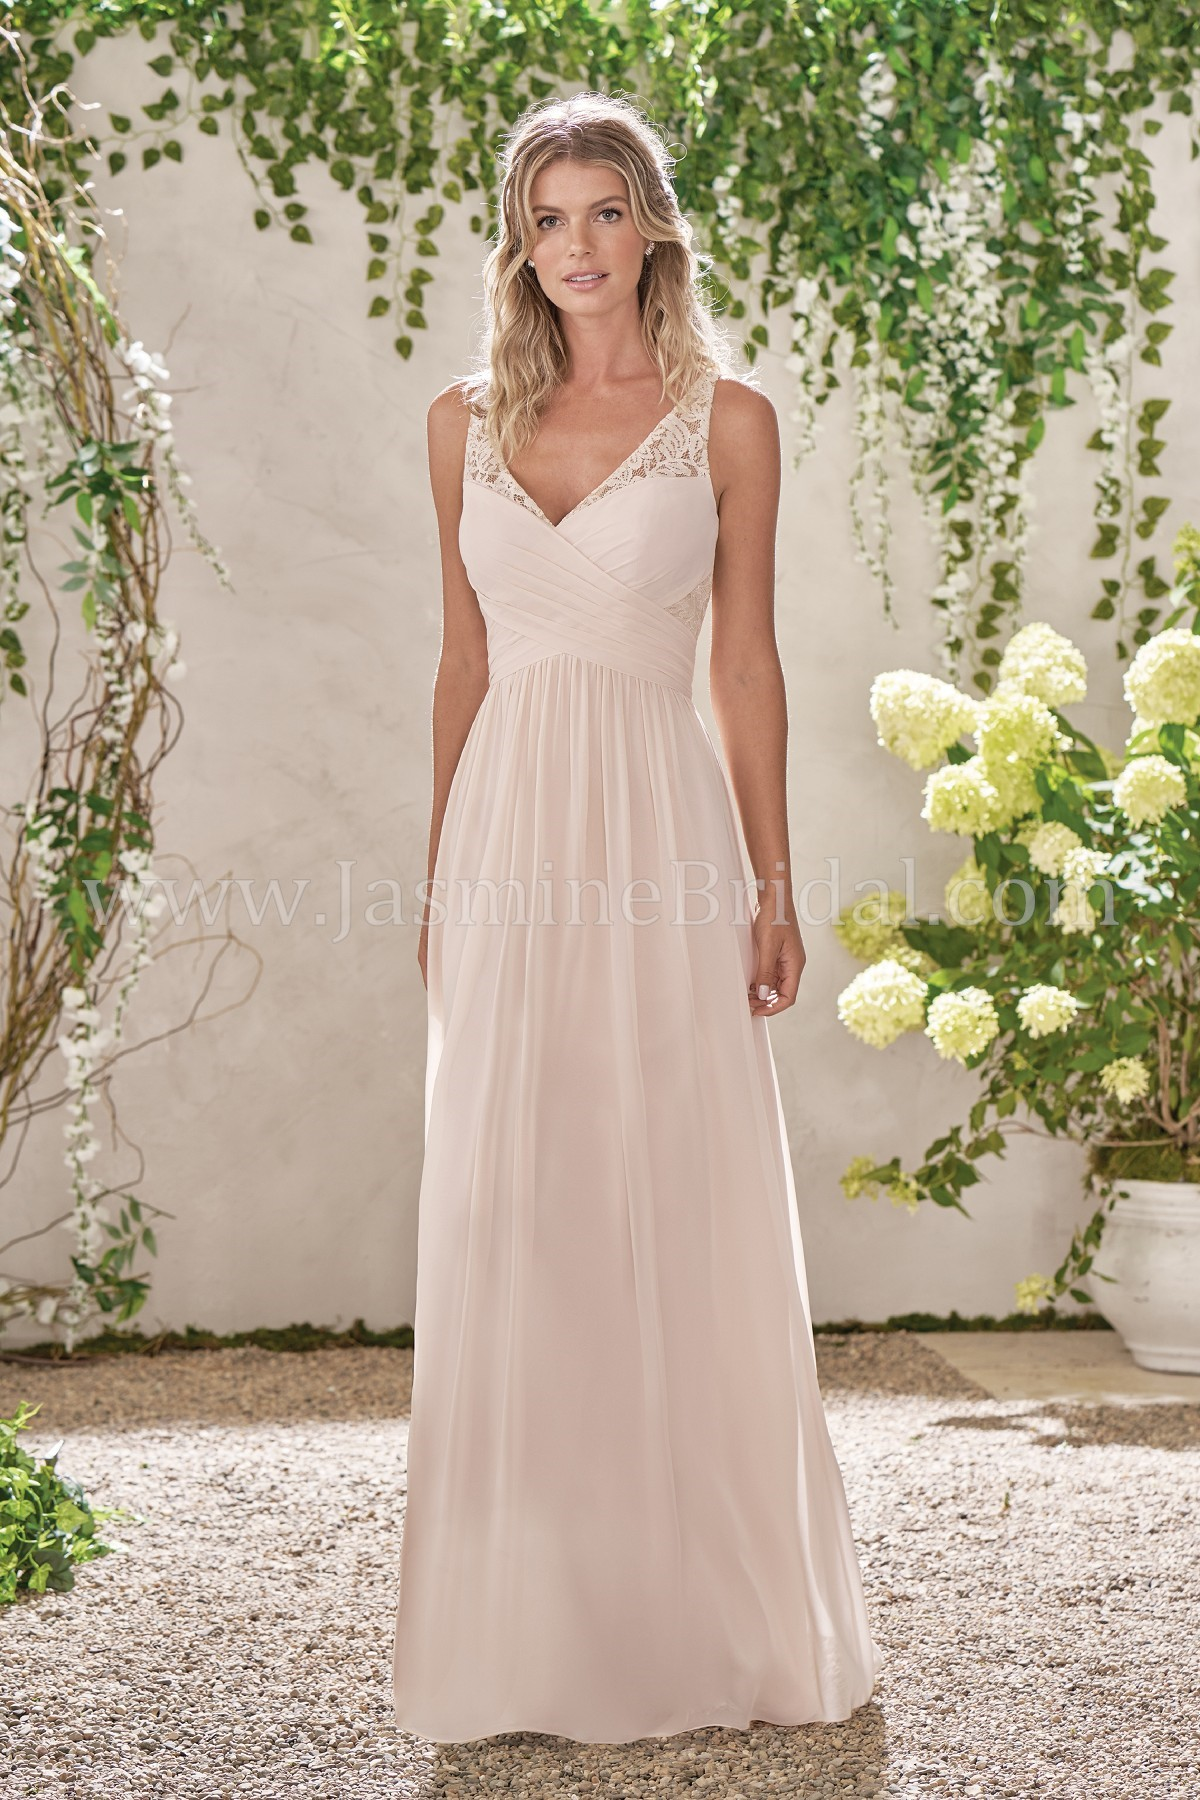 The perfect bridesmaid dresses gowns at jasmine bridal b193001 bridesmaid dresses ombrellifo Gallery